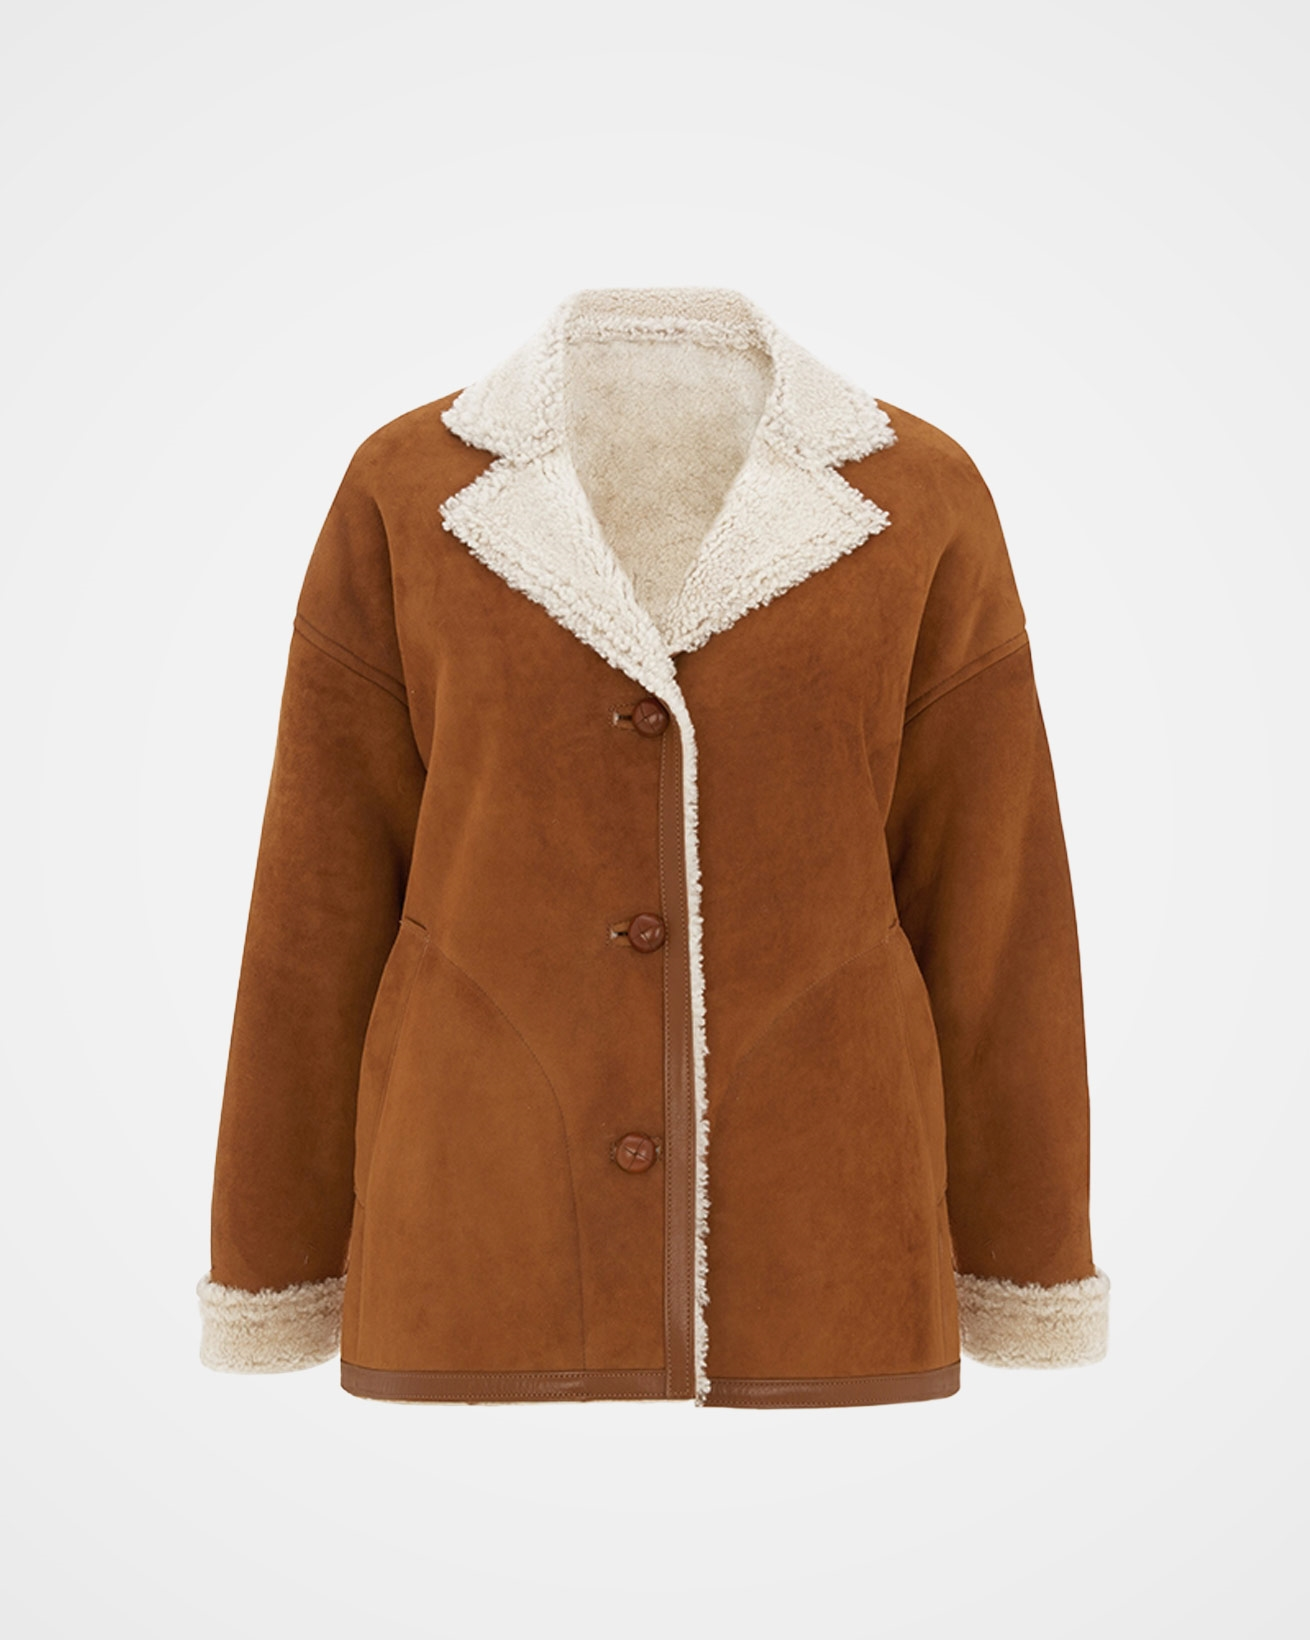 7065_classic-sheepskin-jacket_whiskey_front.jpg